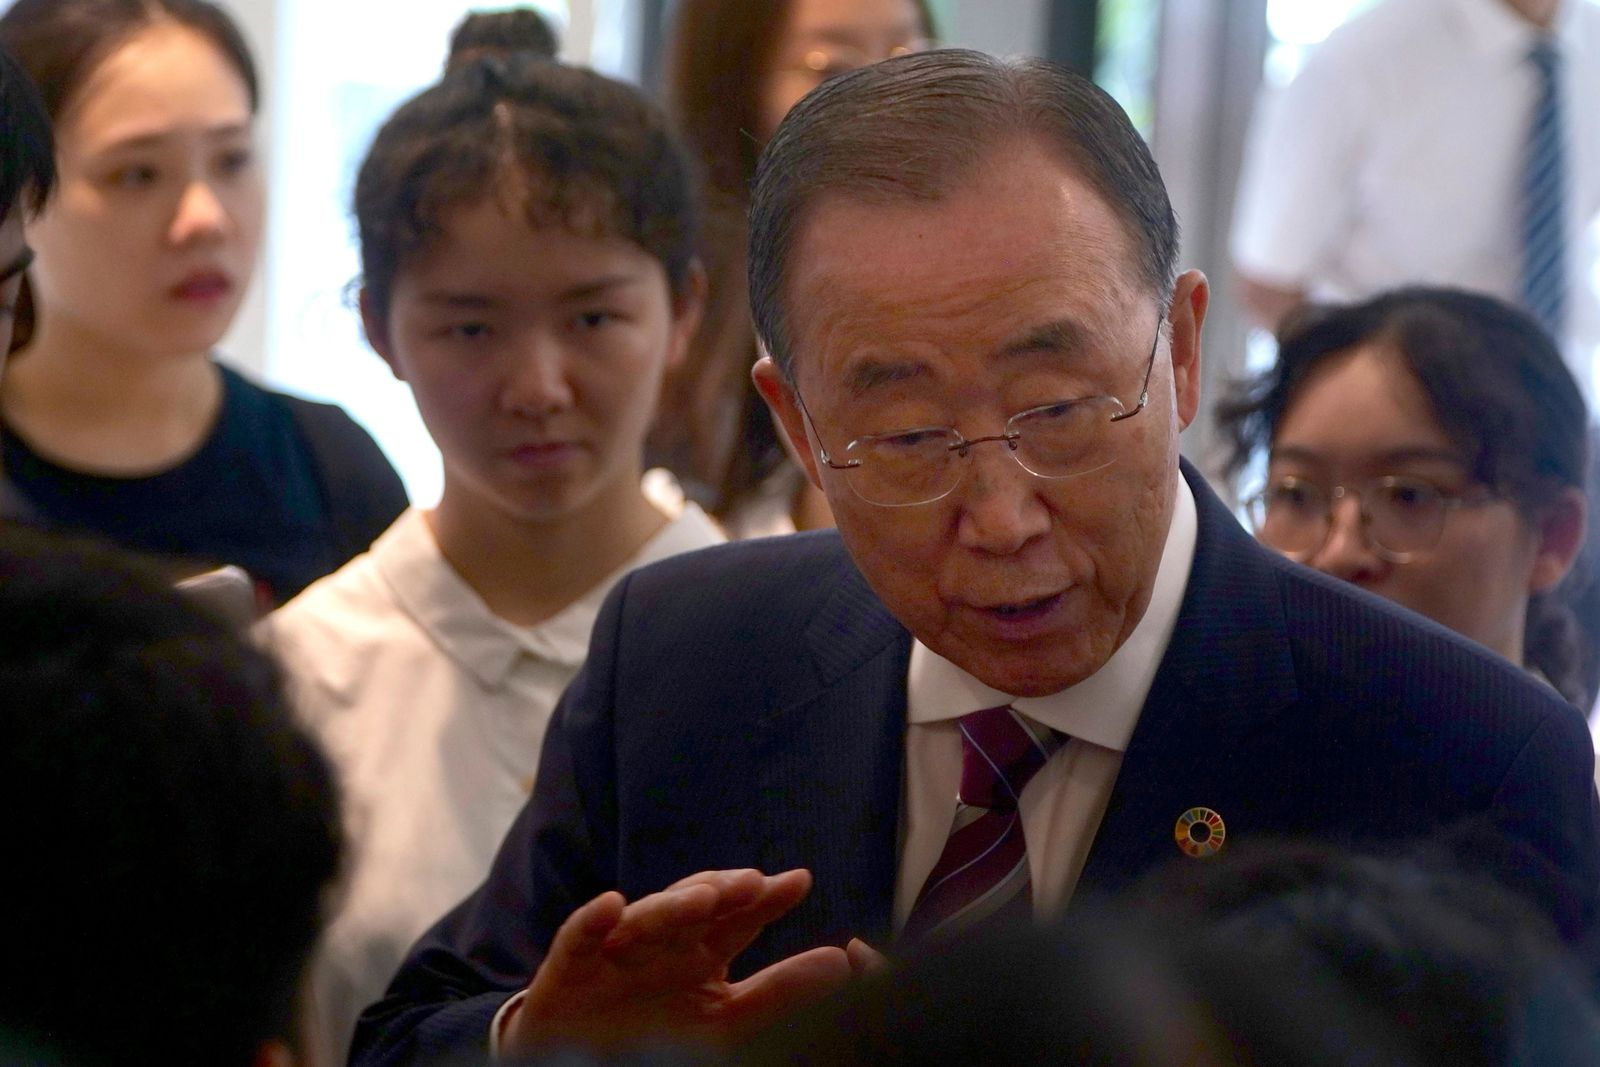 Former U.N. Secretary-General Ban Ki-moon speaks with attendees on the sidelines of a press conference for the release of a report on adapting to climate change in Beijing, Tuesday, Sept. 10, 2019.{ } (AP Photo/Sam McNeil)